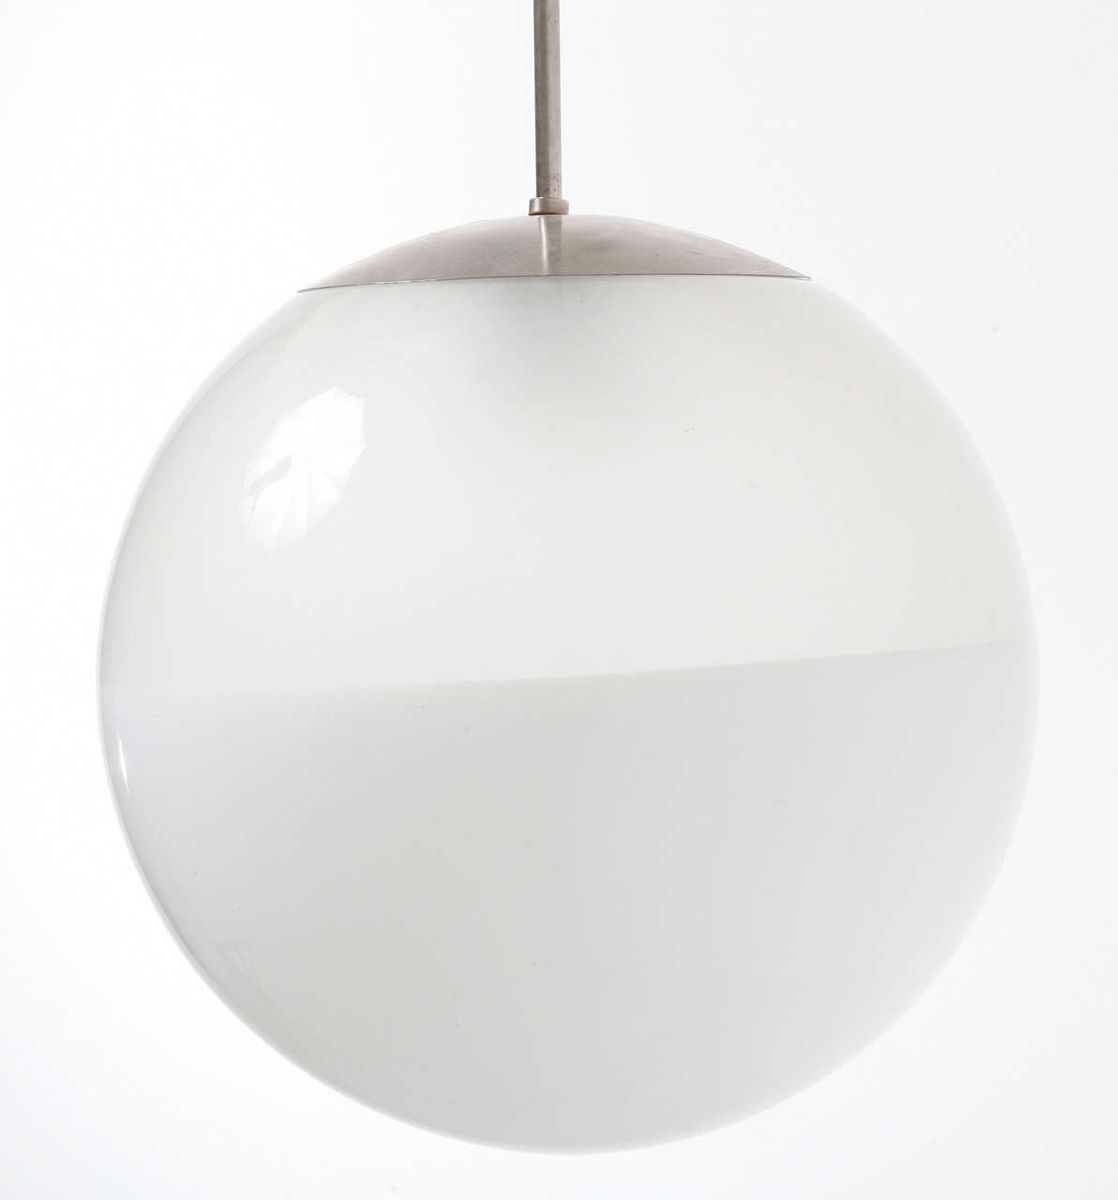 Italian Bowl Lamp, 1965 for sale at Pamono